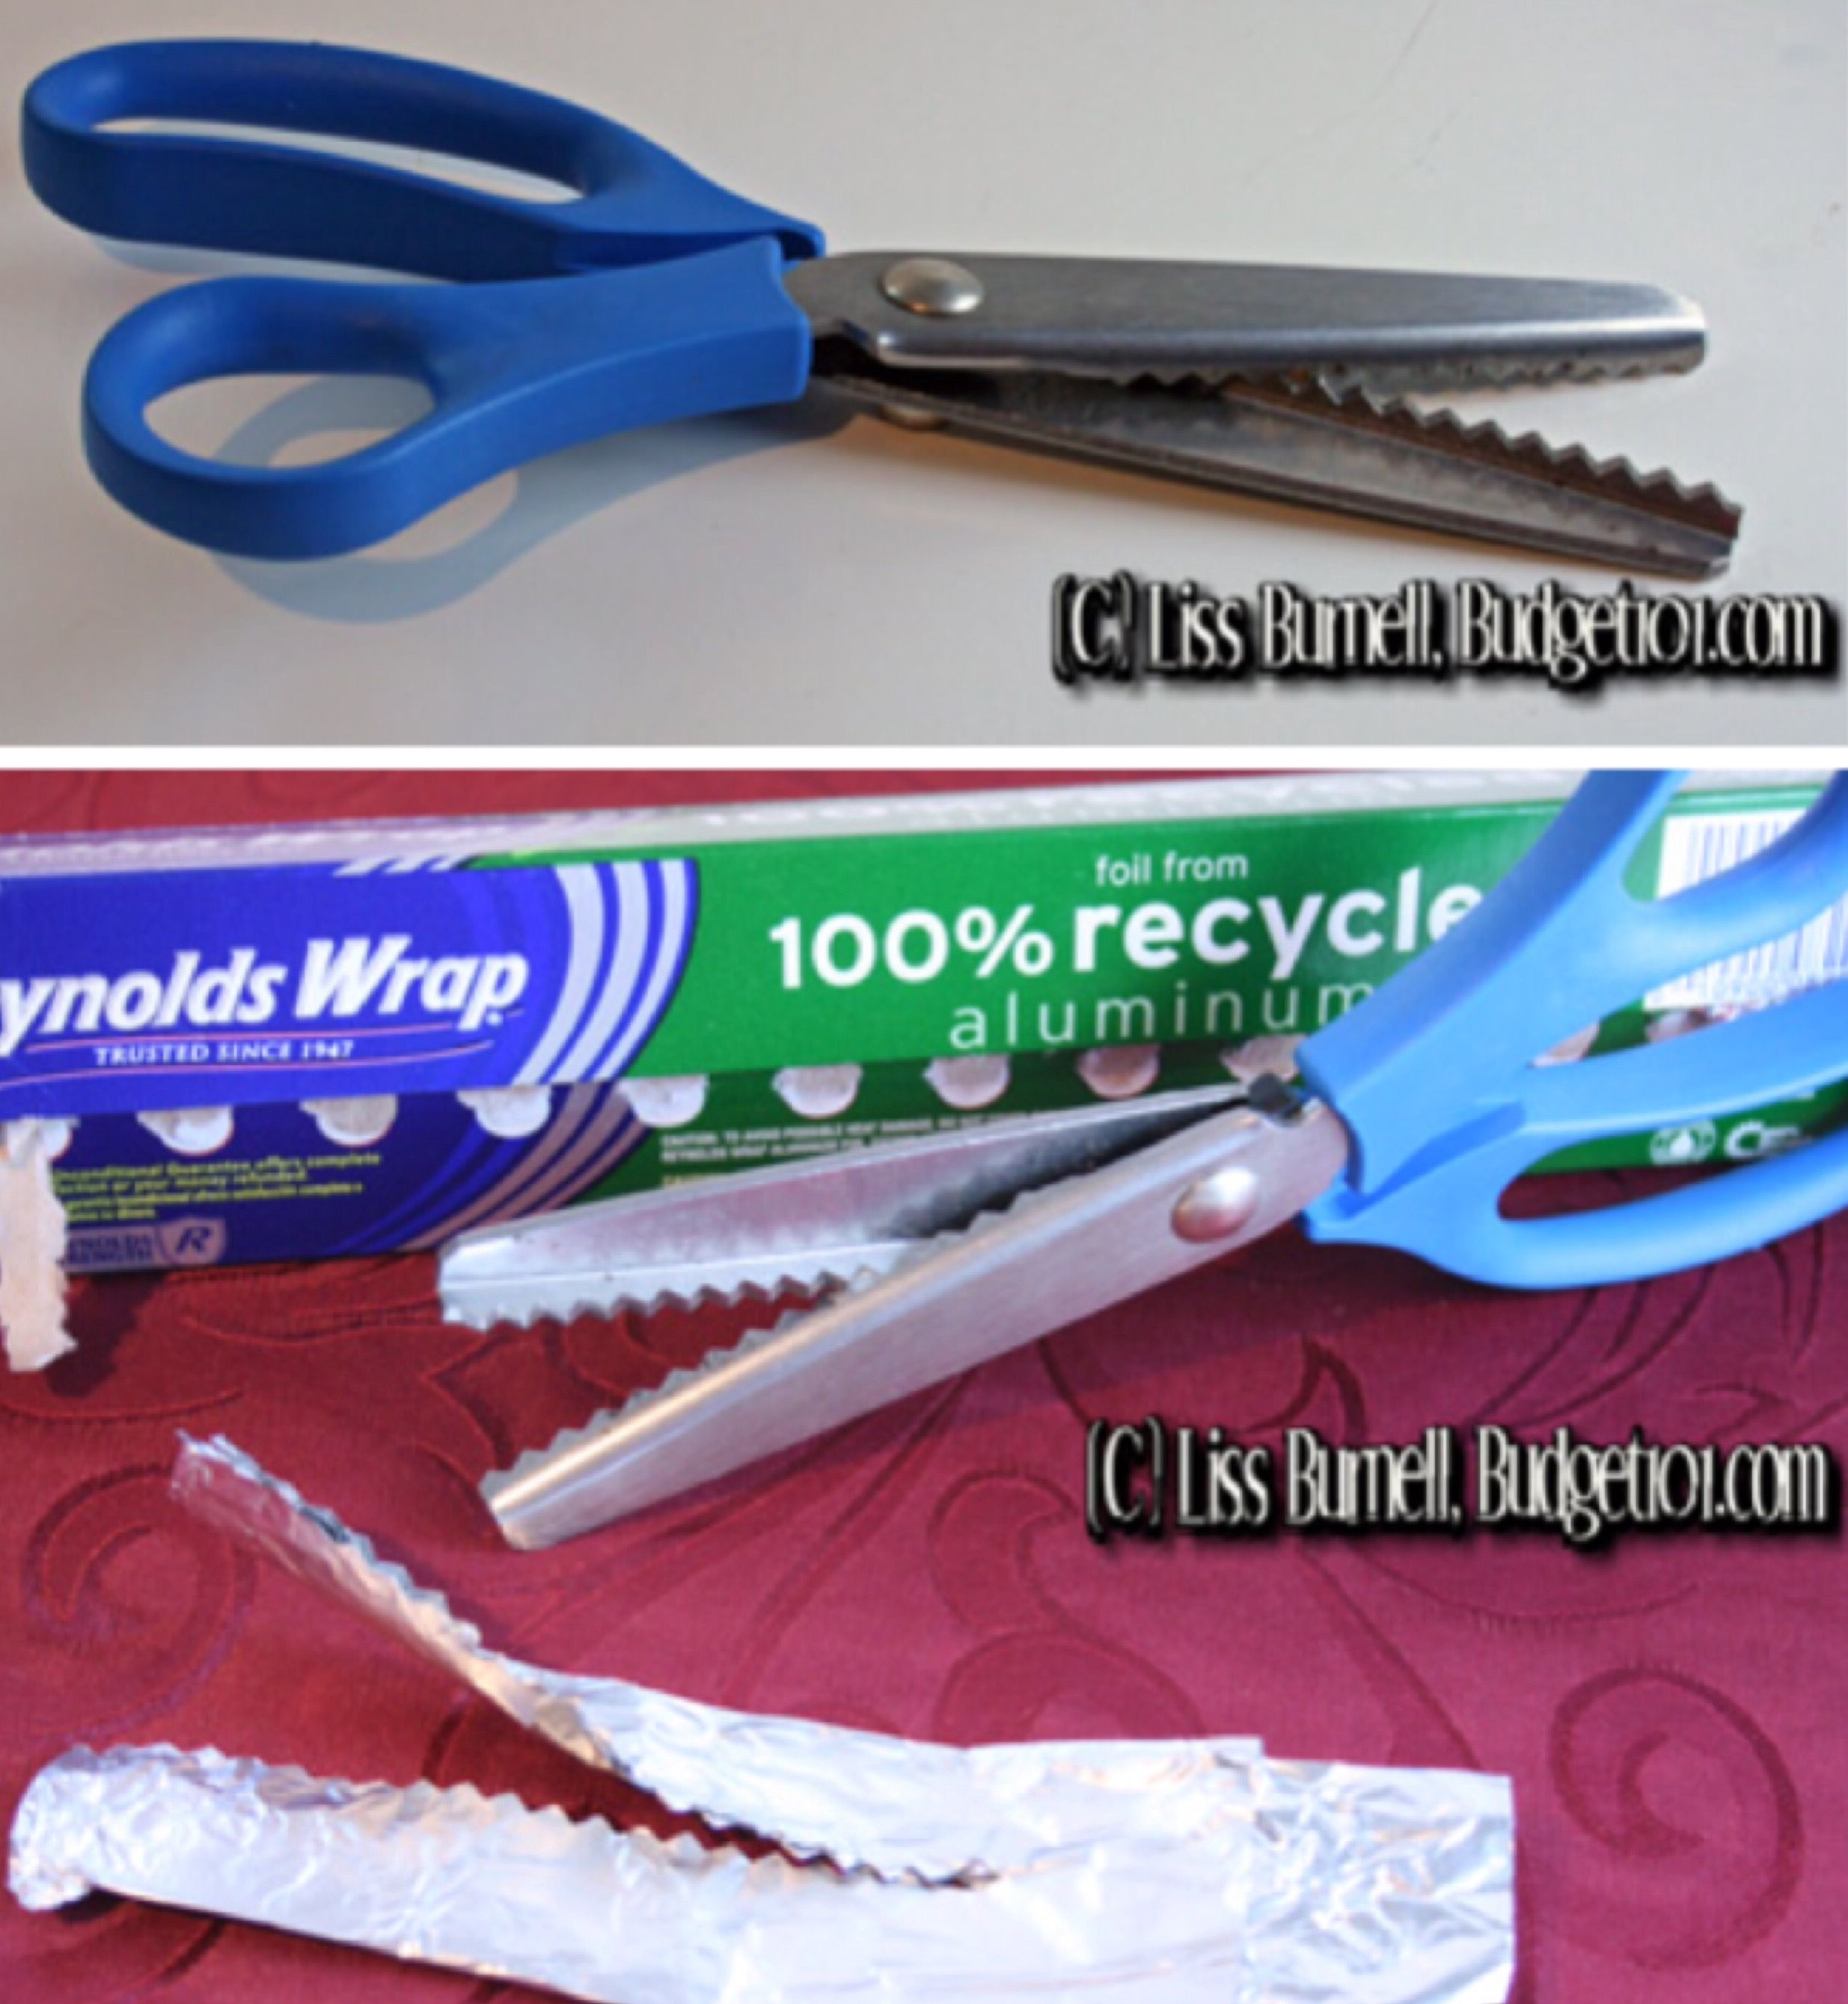 How To Sharpen Pinking Shears Pinking Shears Sewing Techniques